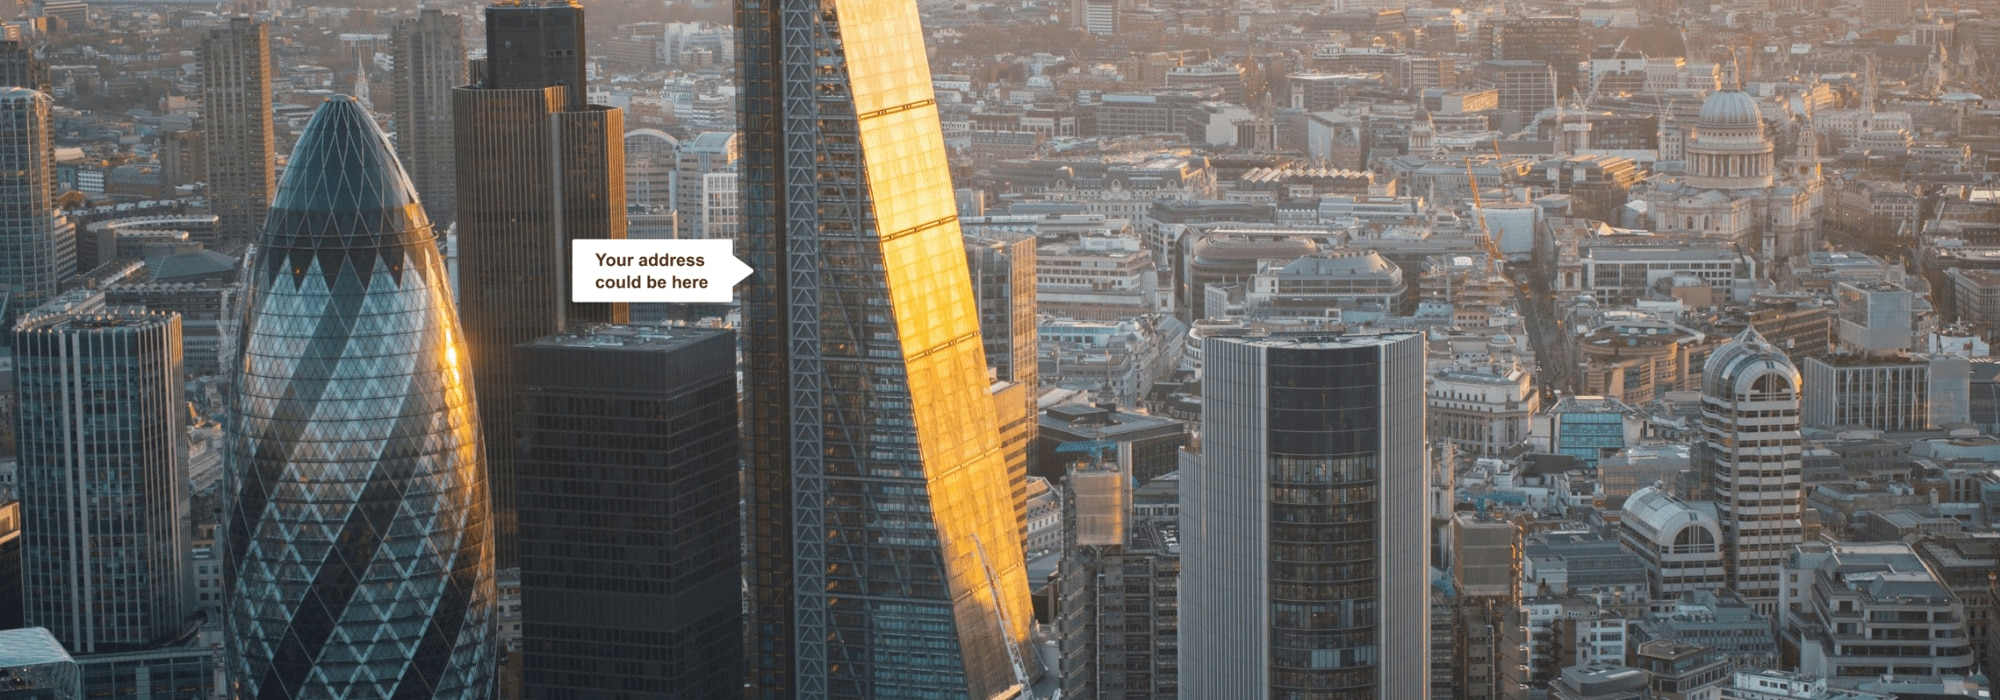 leadenhall_building_banner-min.png